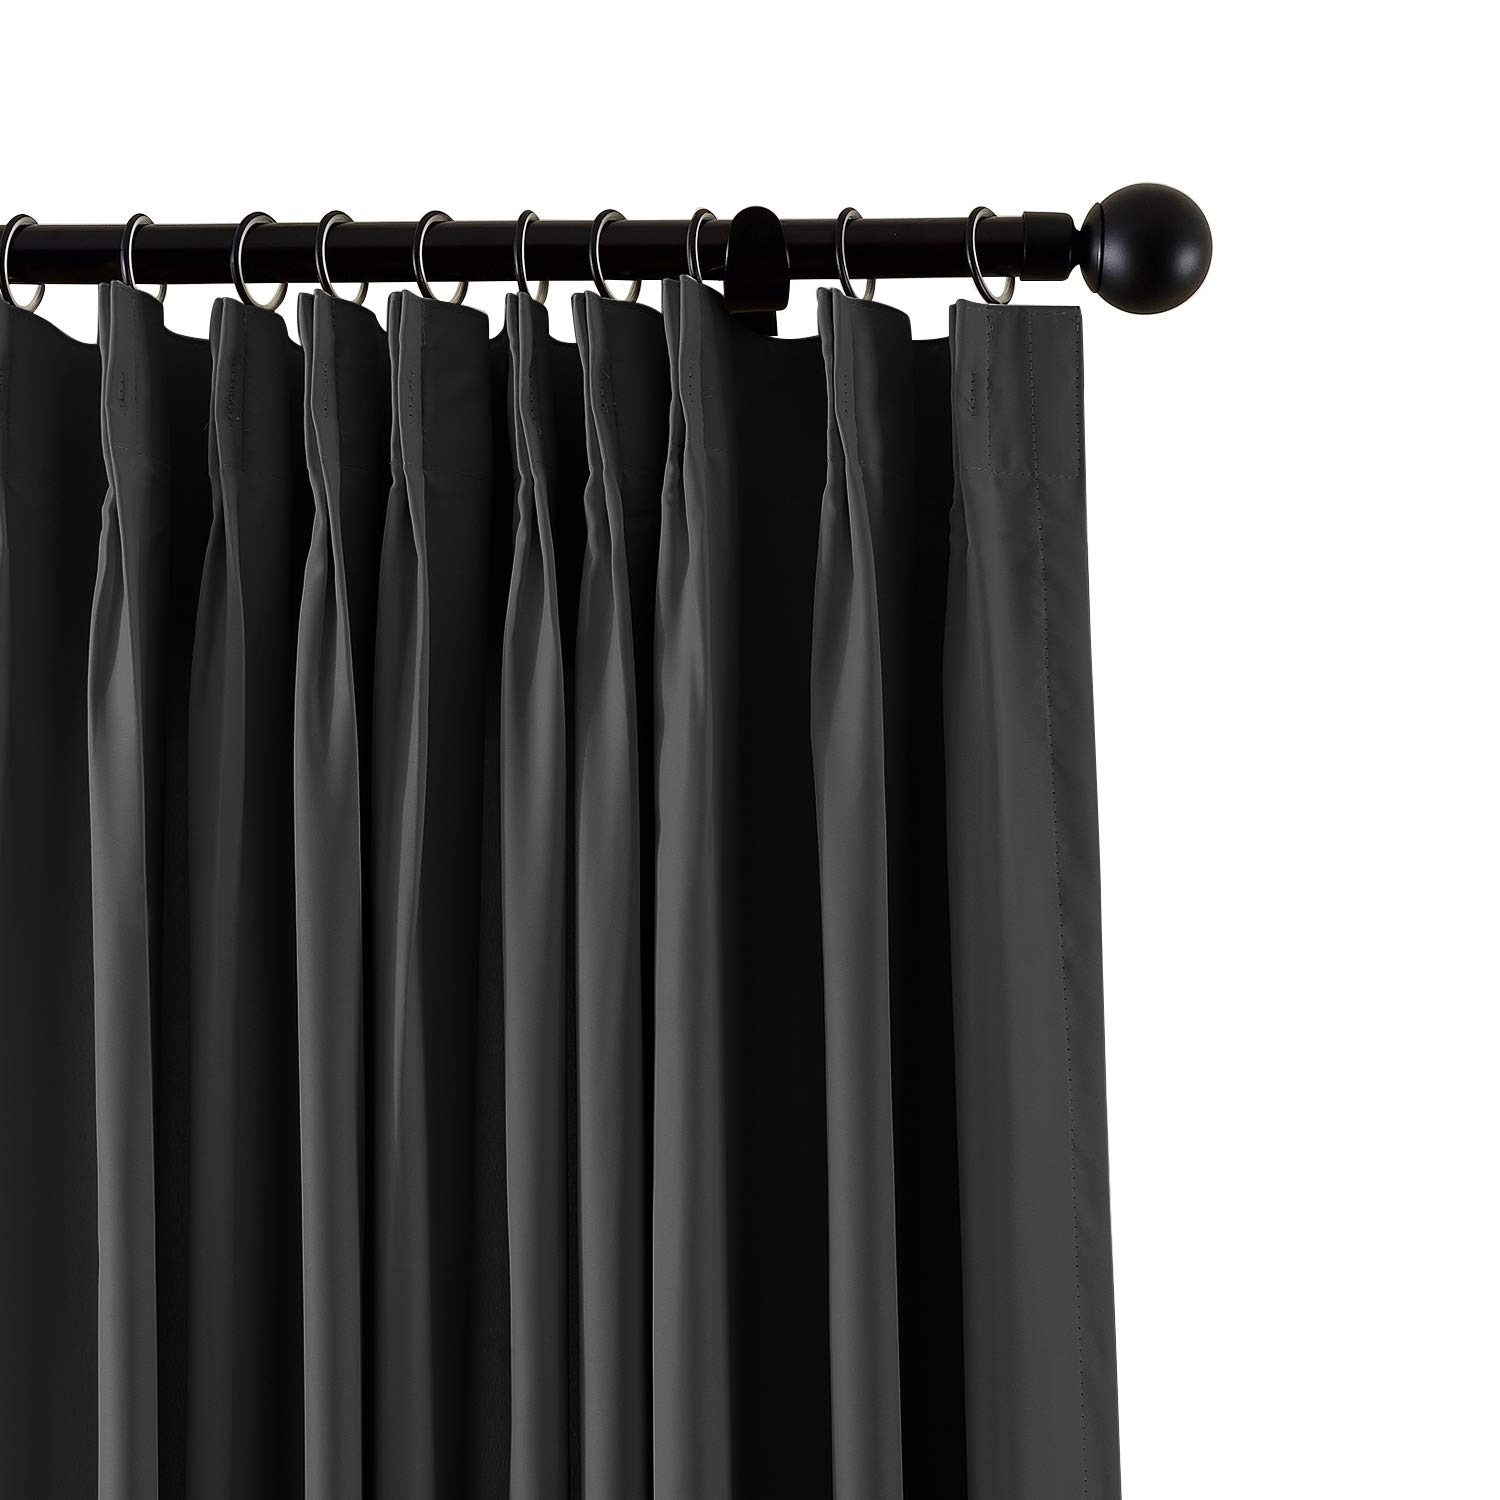 ChadMade Fireproof Flame Retardant Thermal Insulated Curtain Drapery Panel Pinch Pleat, Black 72'' W x 120'' L Home, Office, Hotel, School, Cinema Hospital (1 Panel), Exclusive